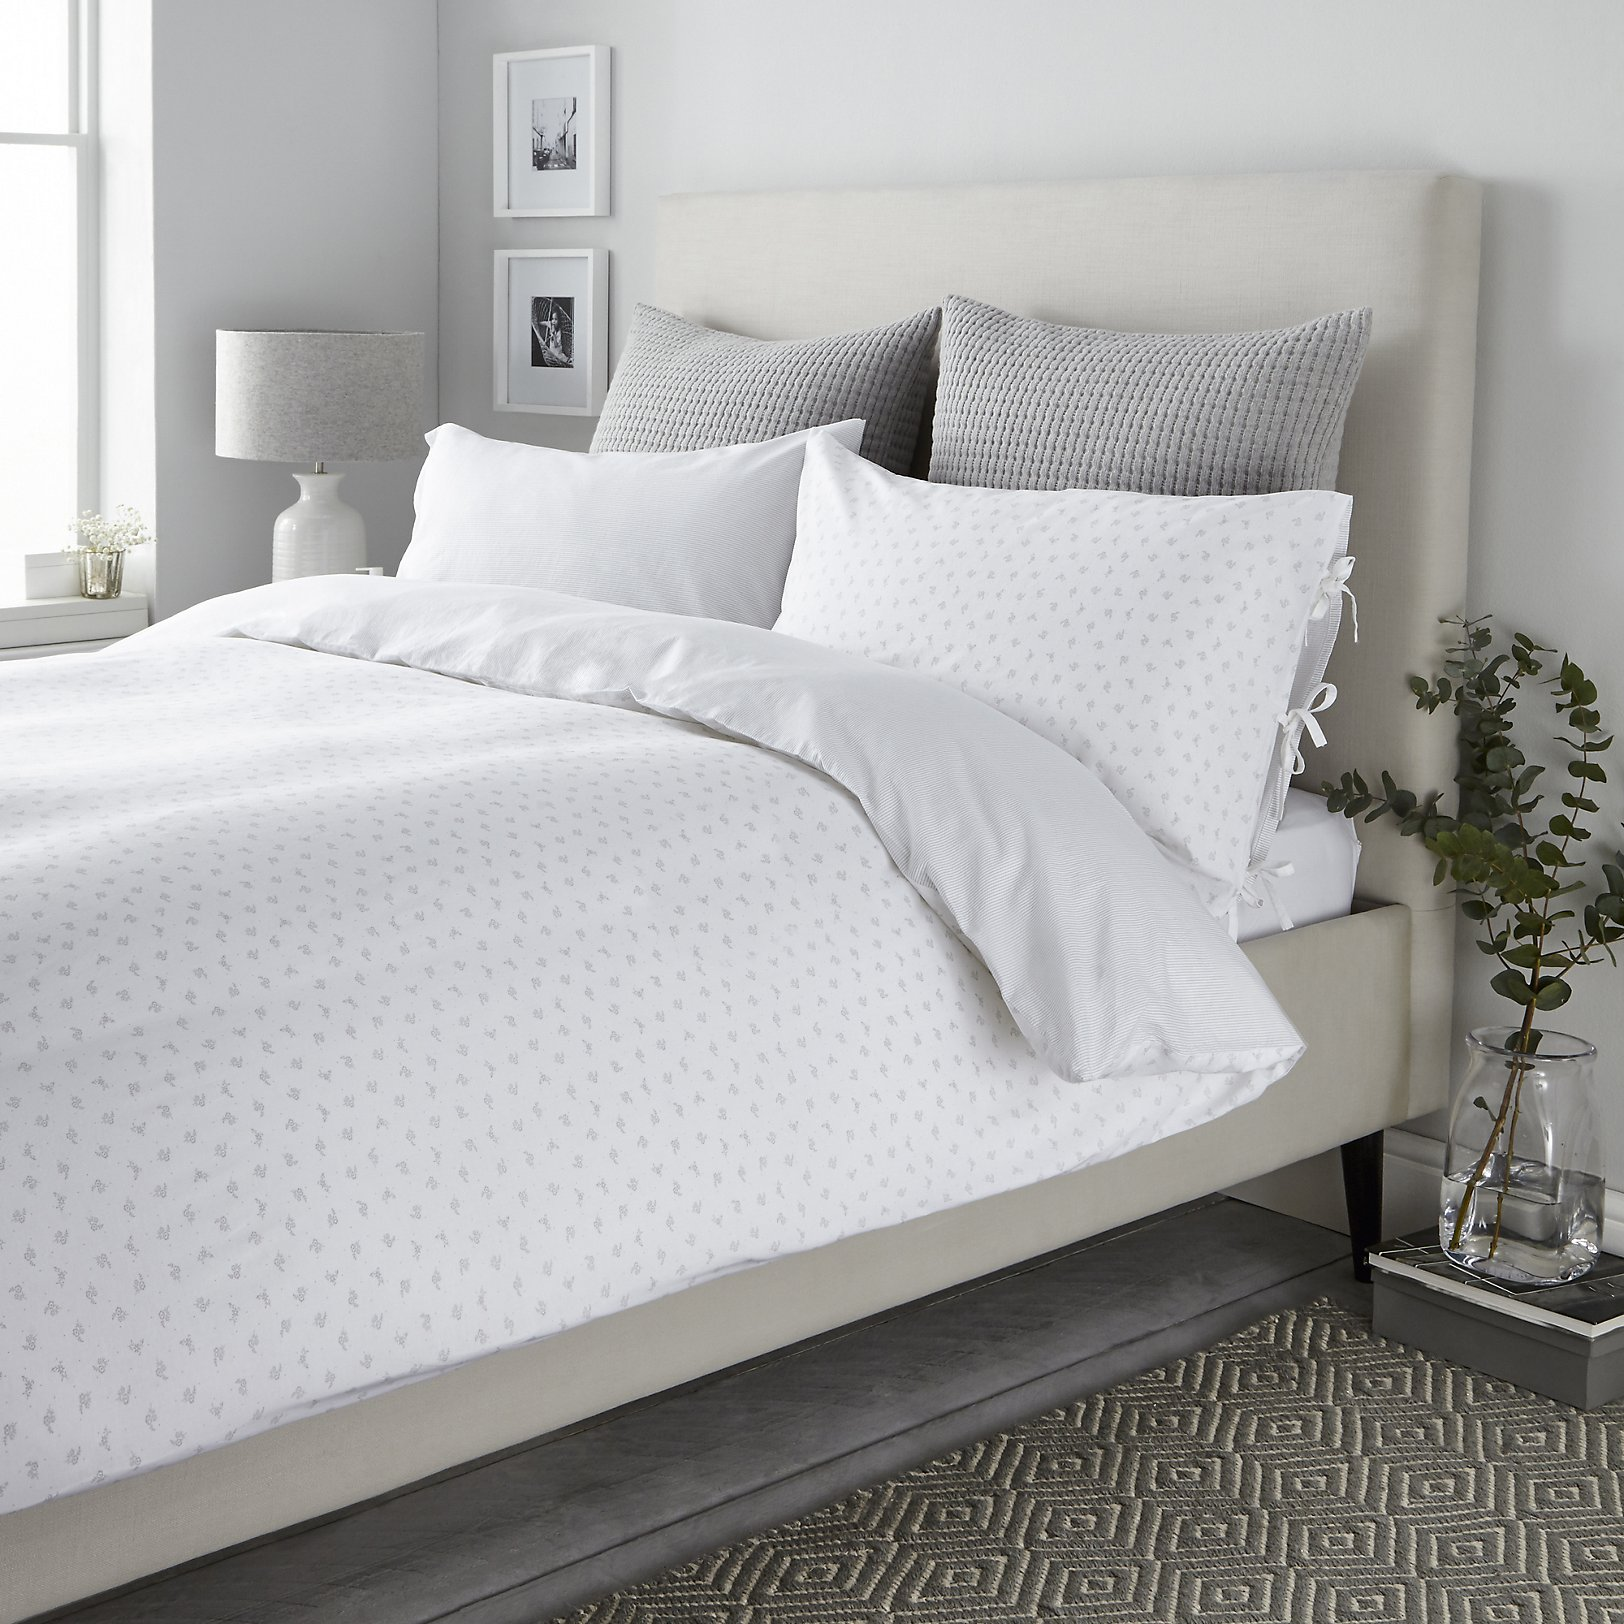 White Duvet Cover | White Company Duvet Cover | King Size White Duvet Cover Set